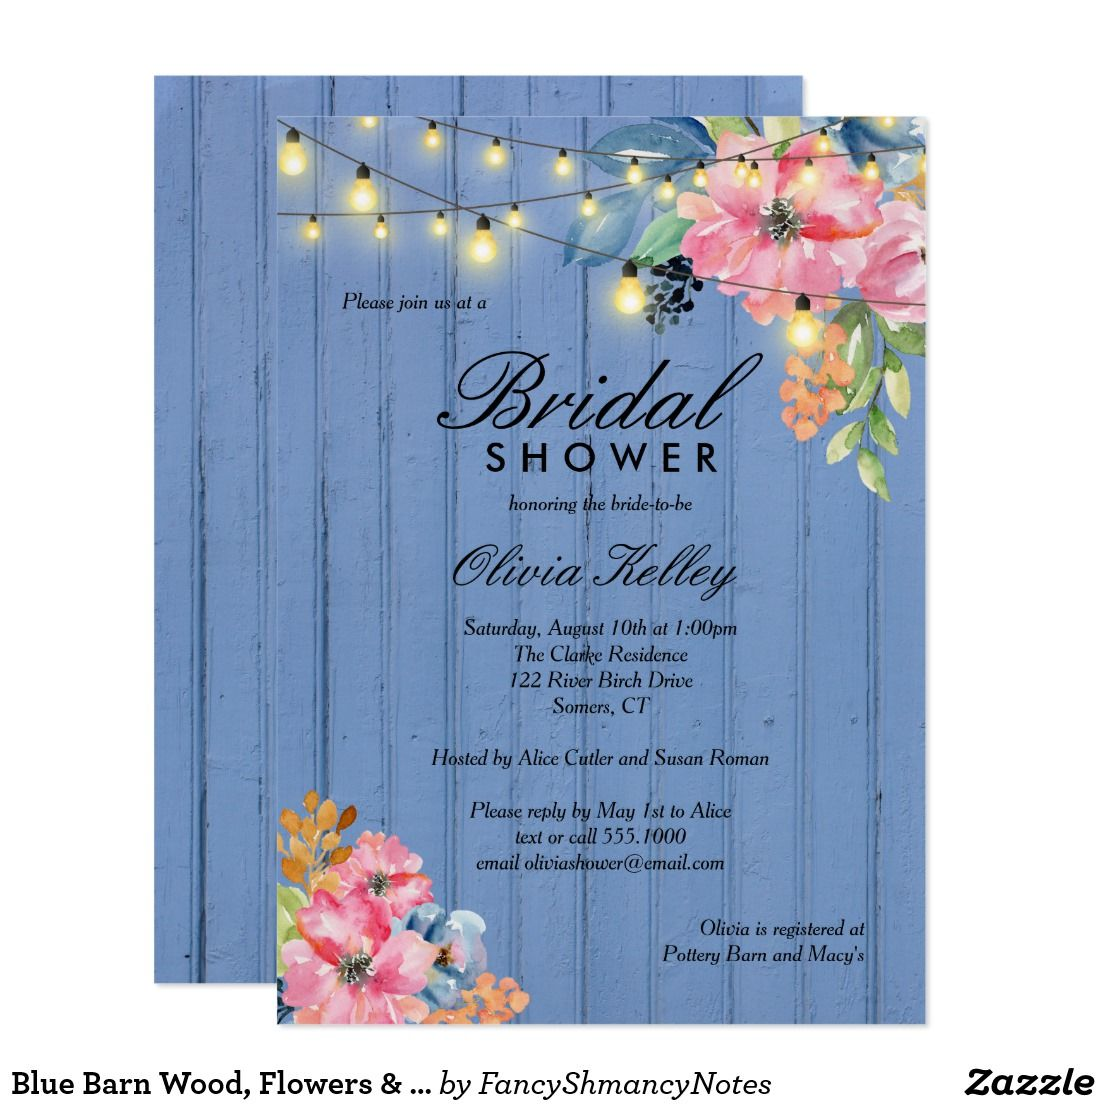 Blue Barn Wood Flowers Lights Bridal Shower Card This Trendy